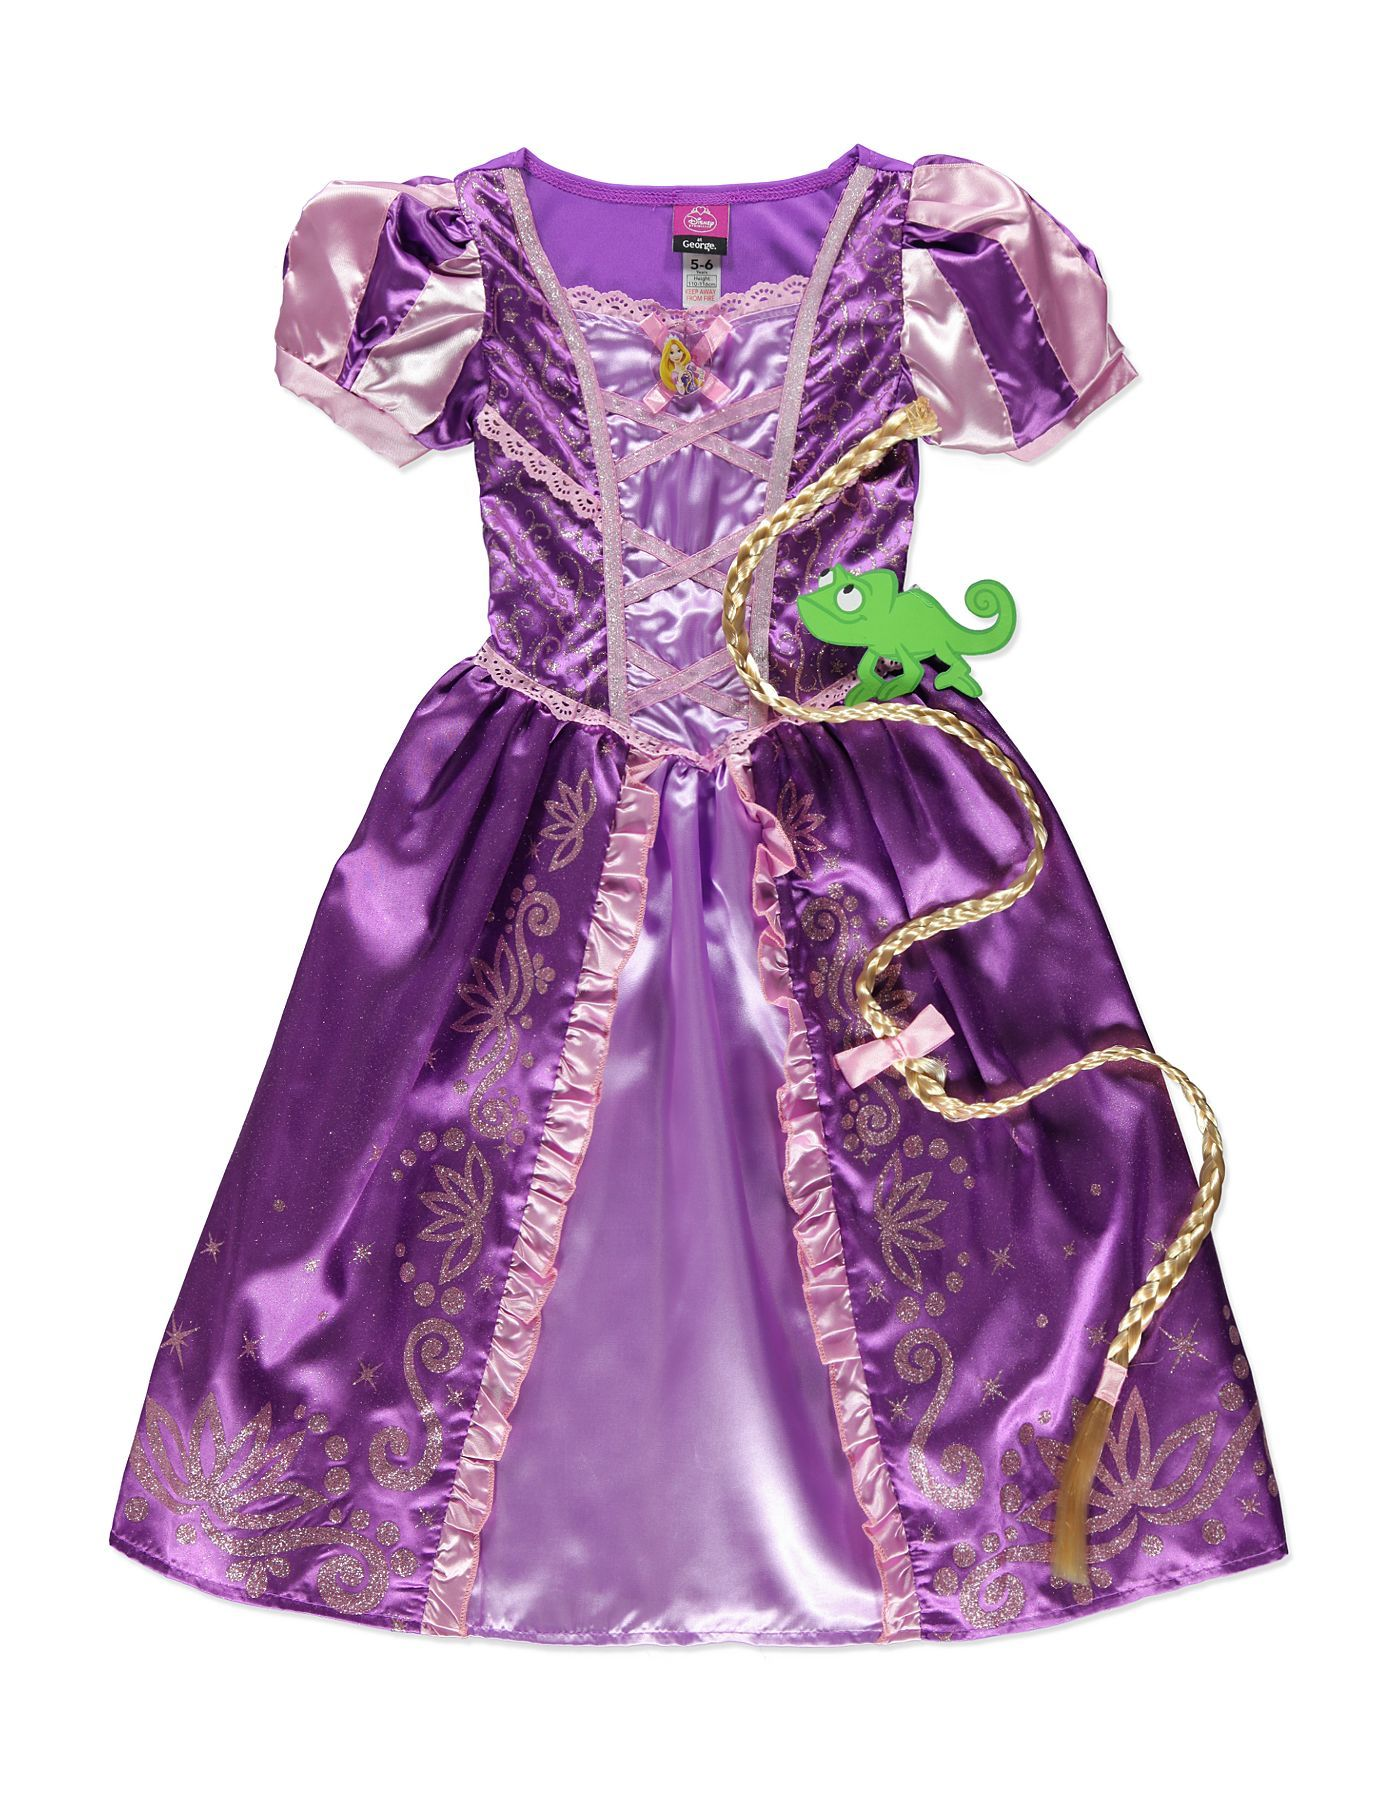 Rapunzel Fancy Dress Costume | Pinterest